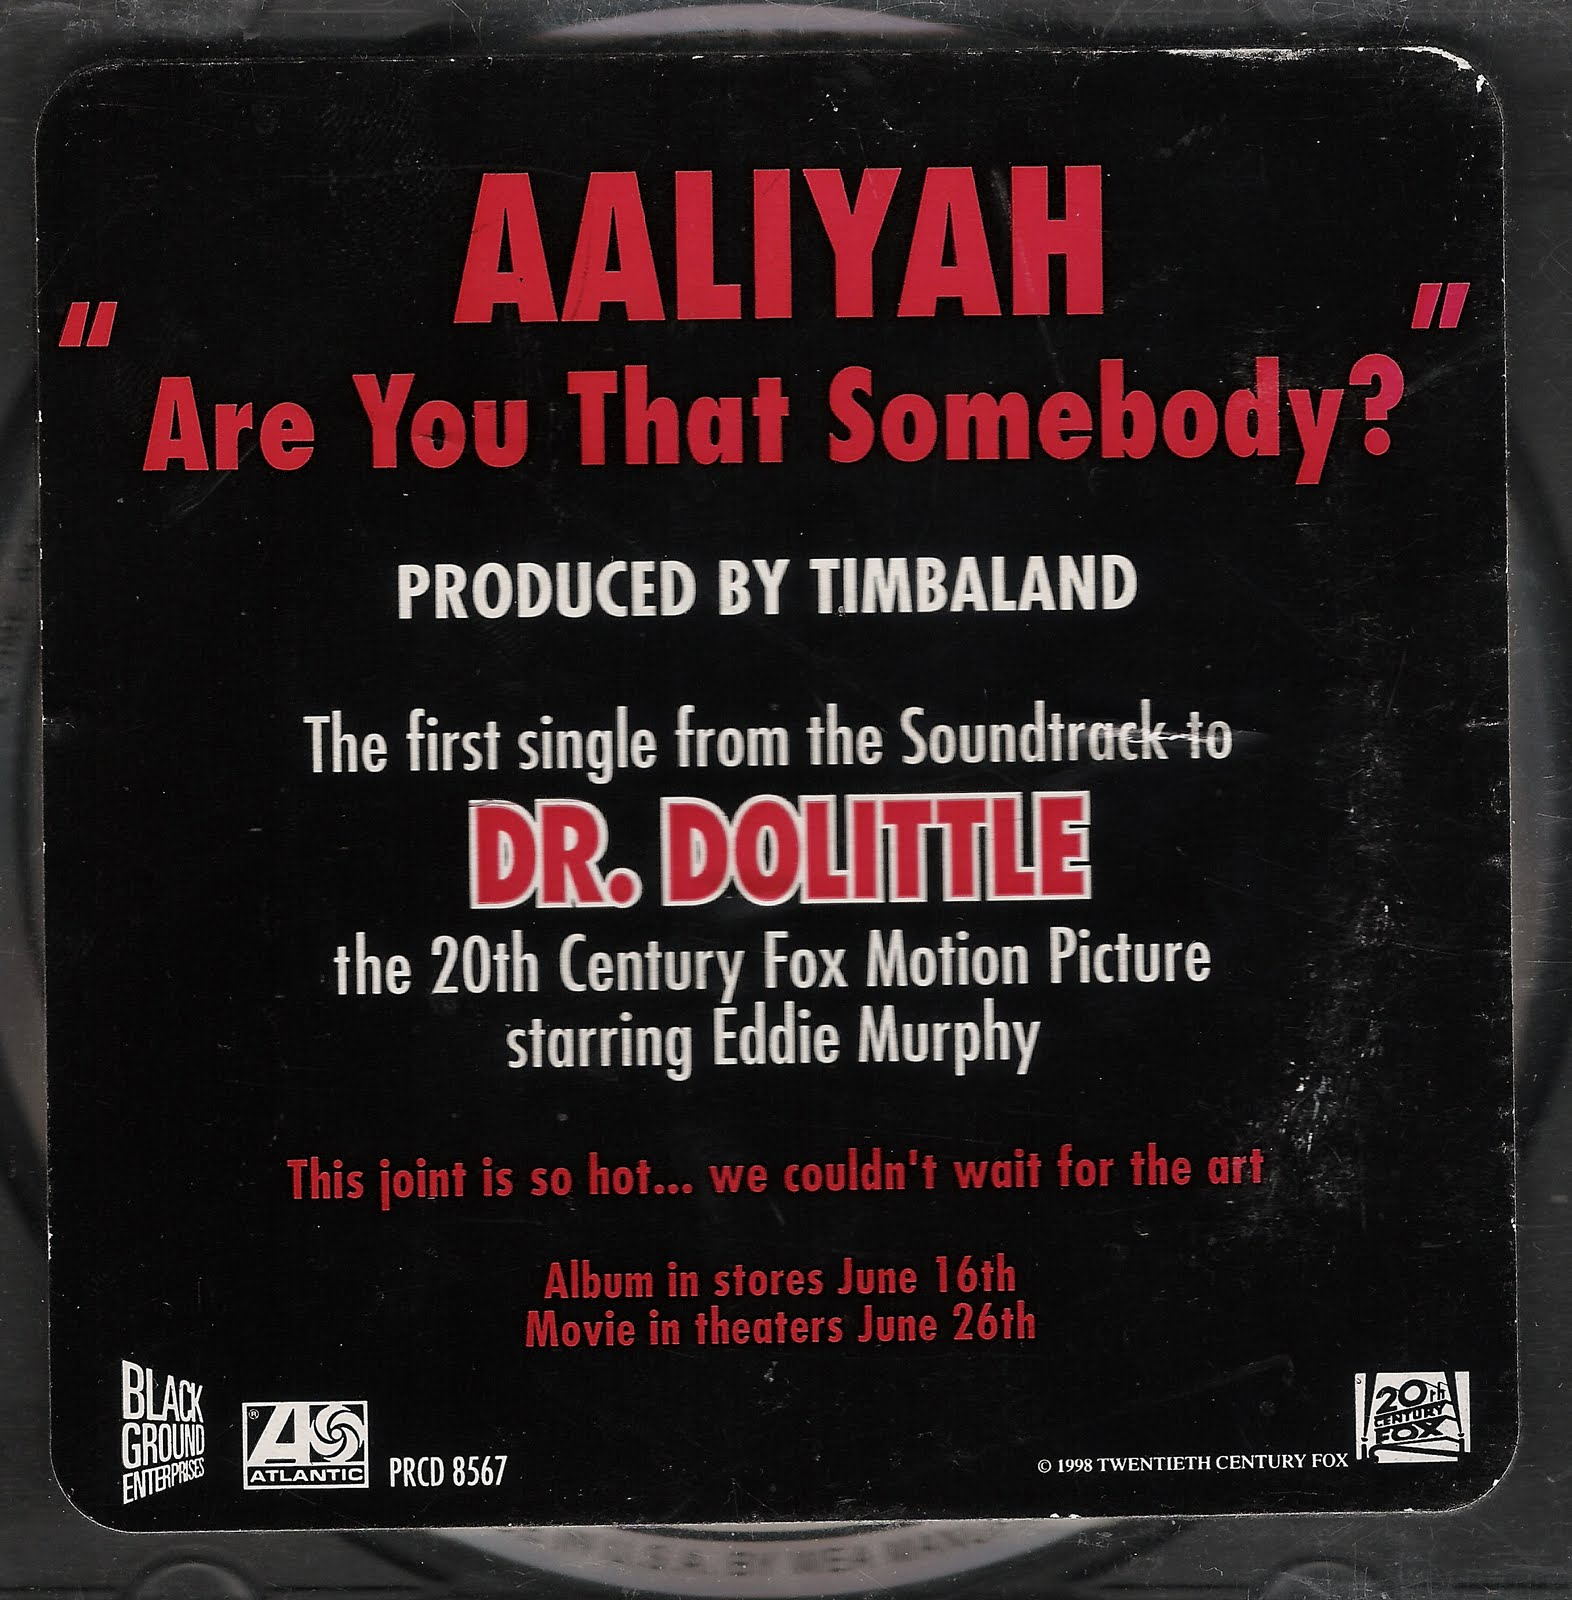 http://2.bp.blogspot.com/-FD5FsRFPDB4/TdVOvSeFO4I/AAAAAAAAJ5o/1c32pqQHfto/s1600/00-aaliyah-are_you_that_somebody-%2528promo_cds%2529-1998-front.jpg